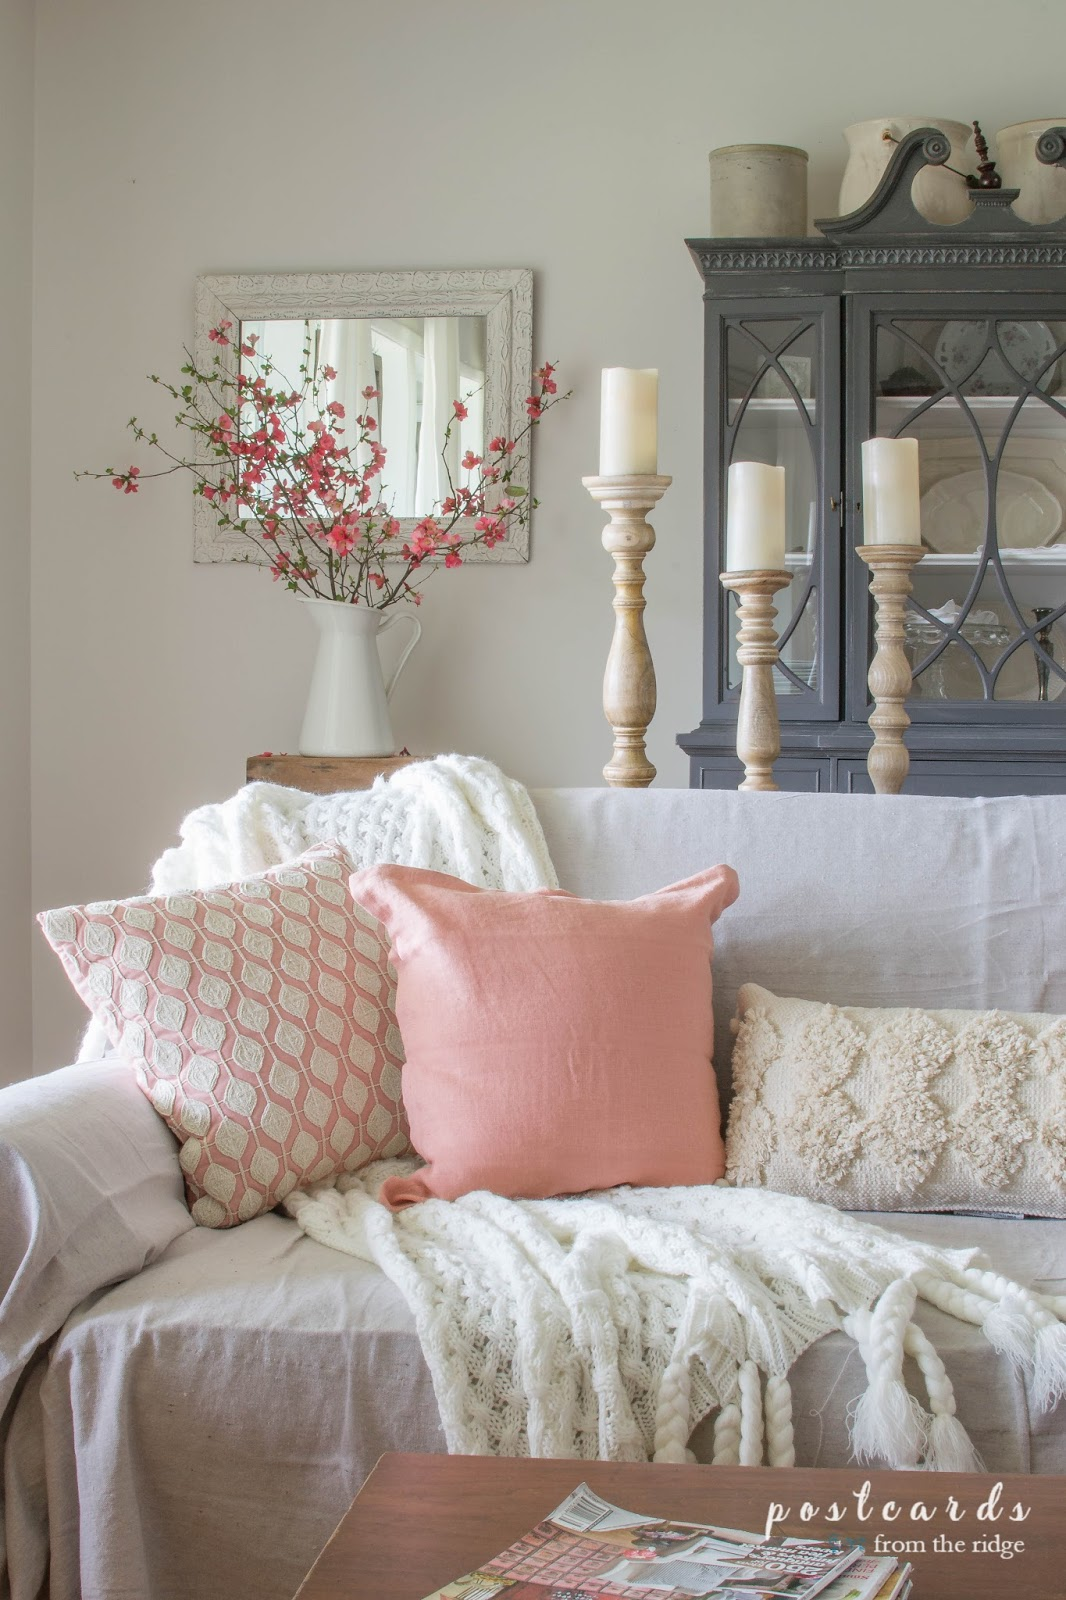 blush colored pillows